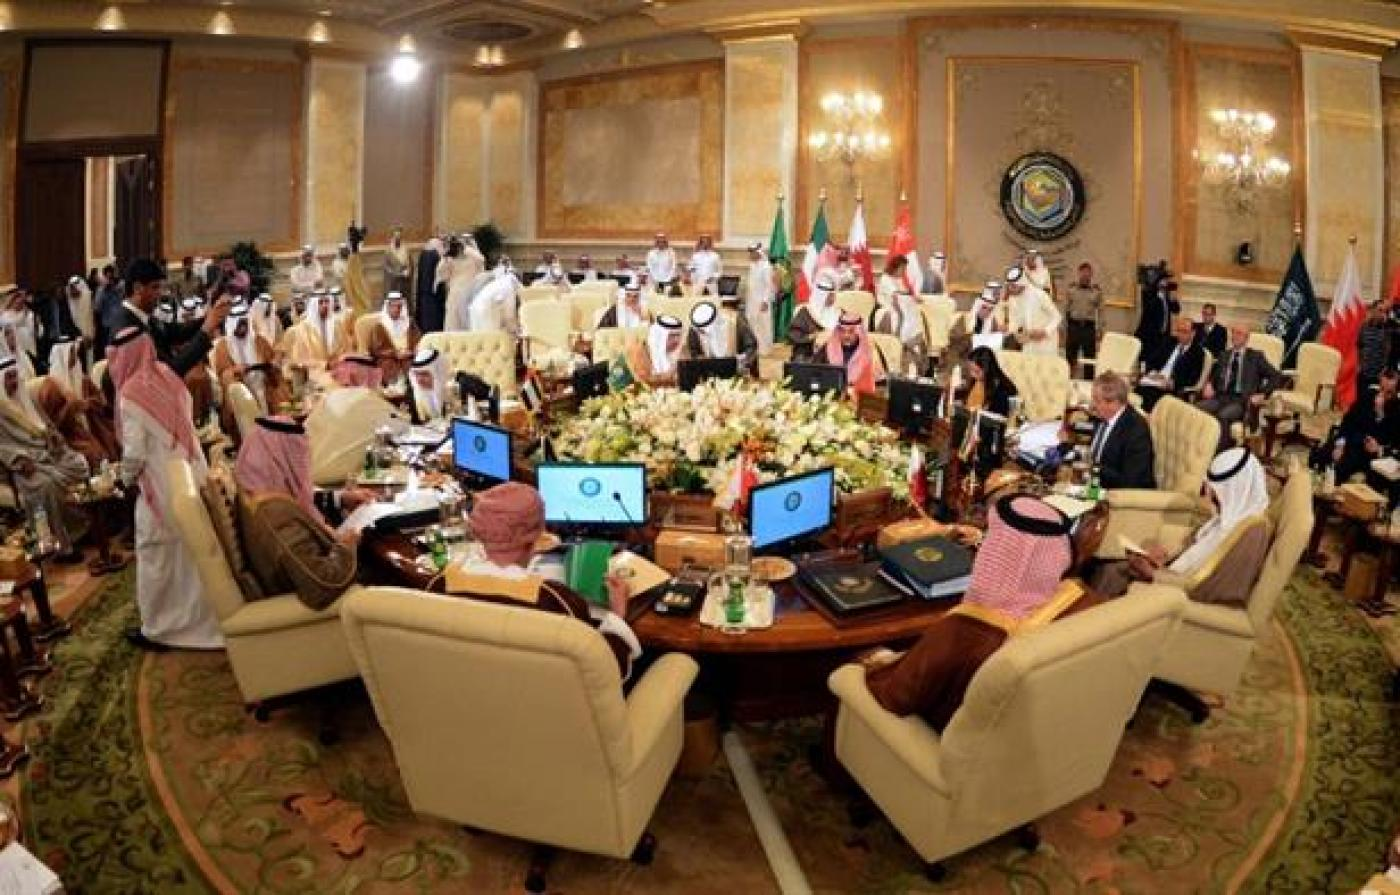 Gulf States meet to discuss GCC rift | Middle East Eye